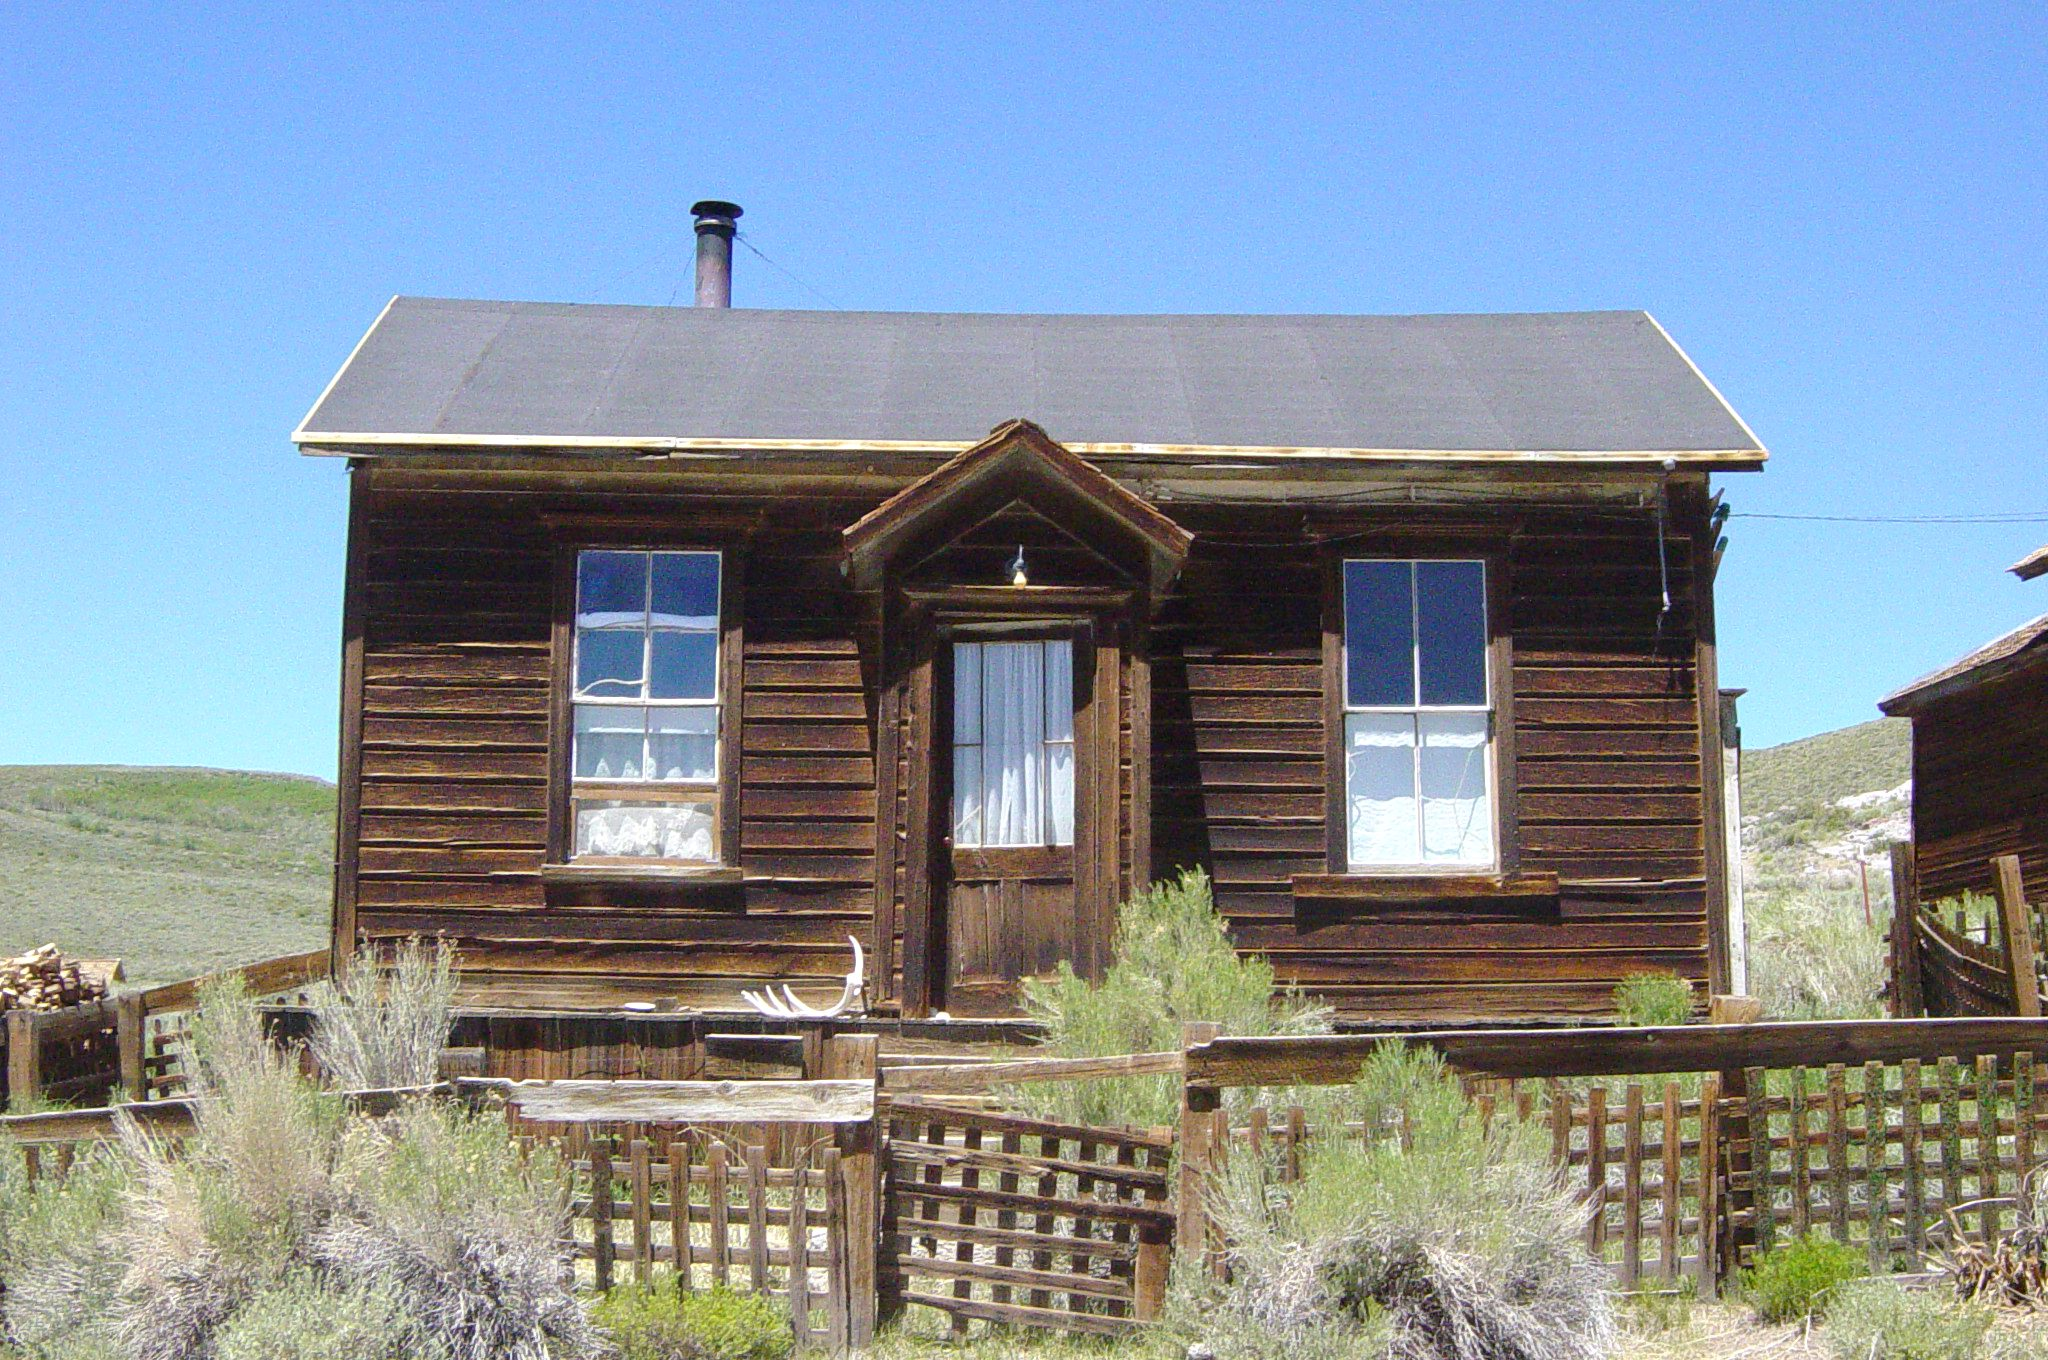 File donnelly house in bodie wikimedia for Donnelly house